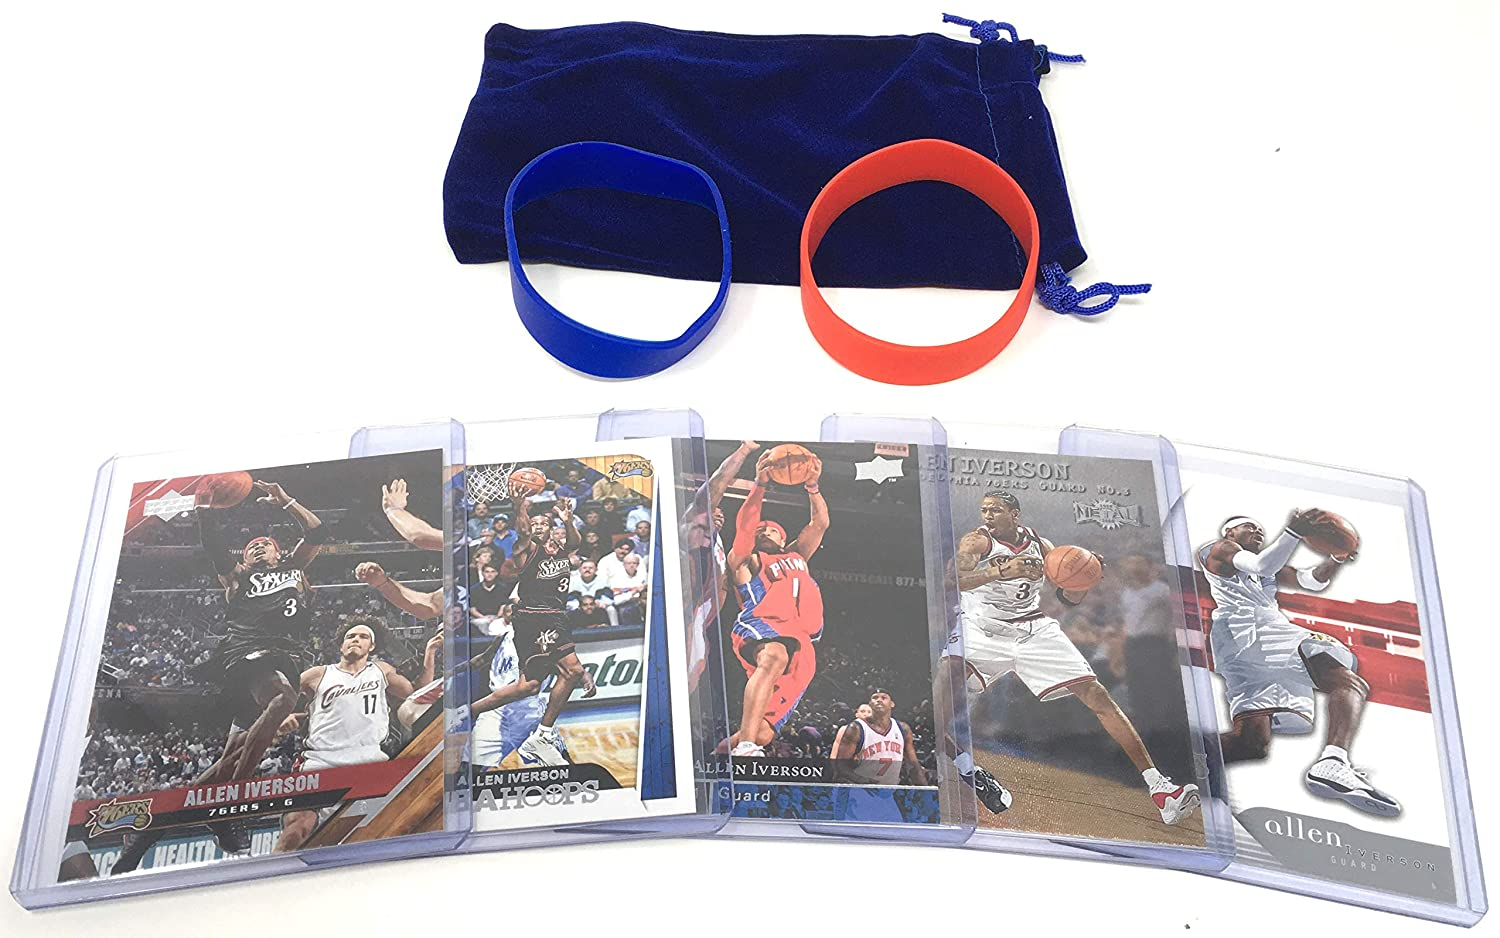 Allen Iverson Basketball Cards Assorted (5) Bundle - Philadelphia 76ers Trading Card Gift Pack Panini Hoops Topps